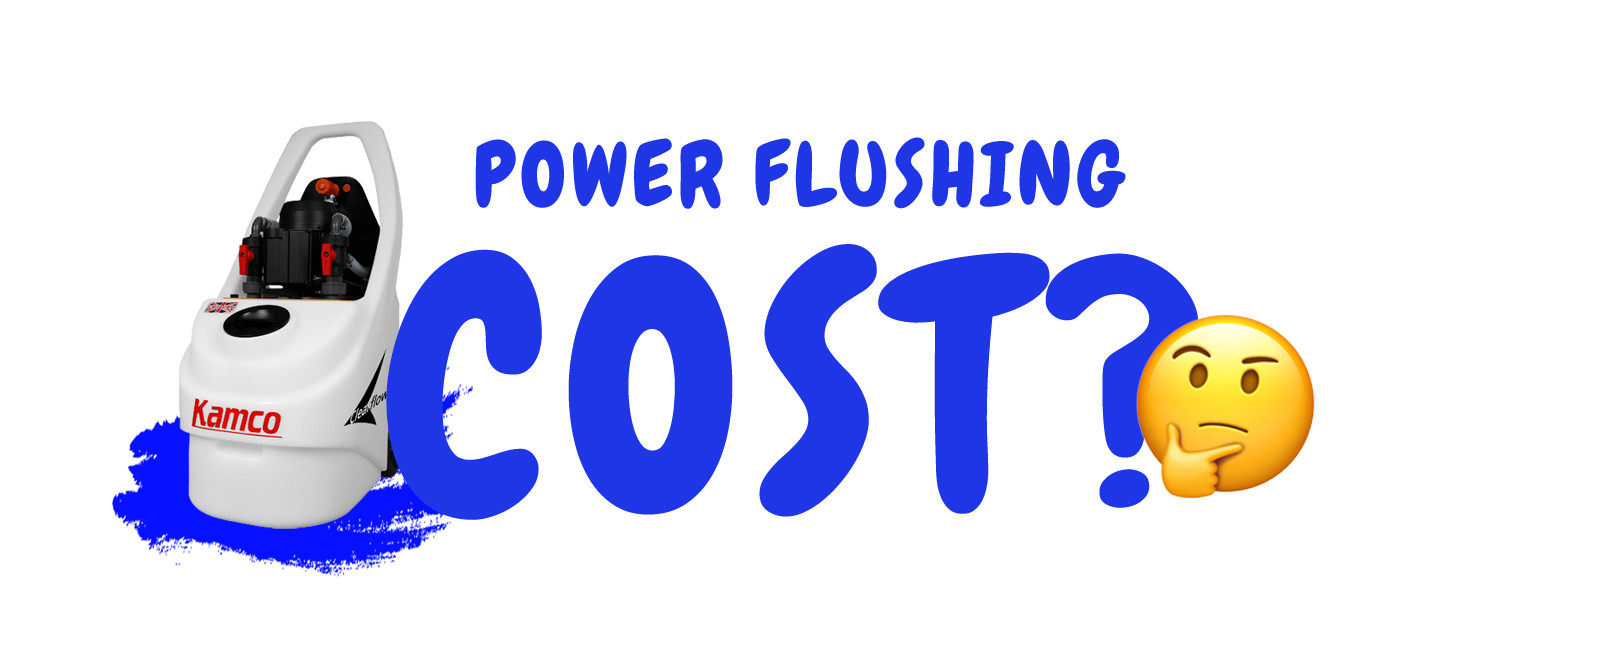 Power Flushing Cost